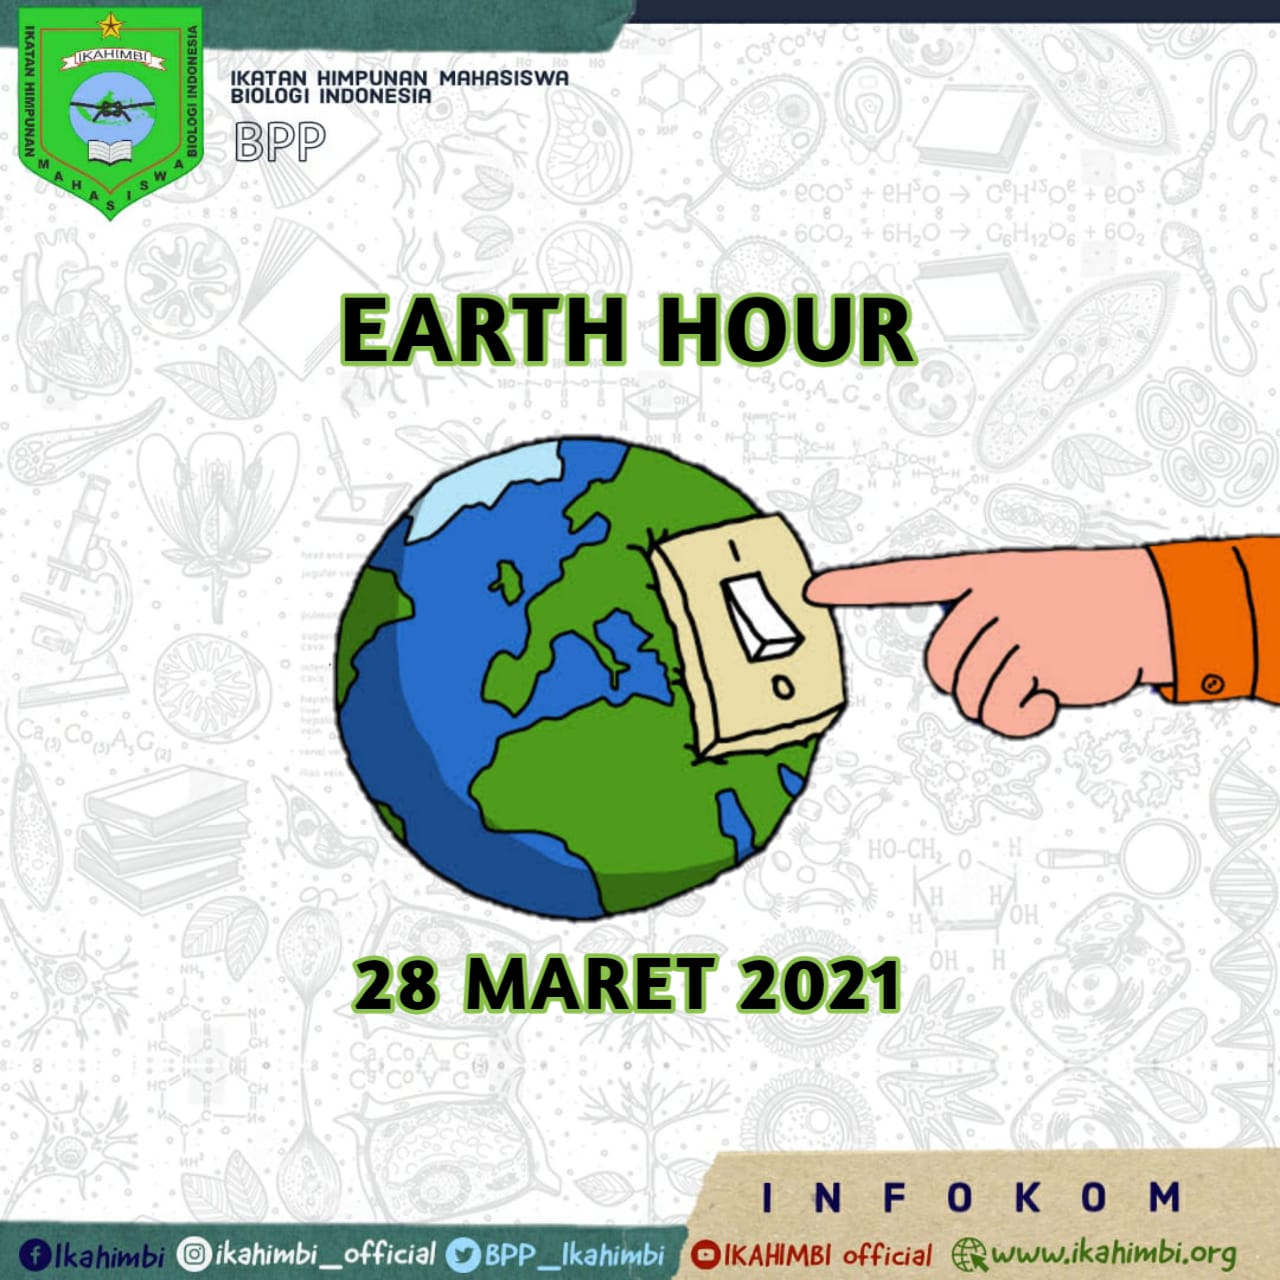 [[EARTH HOUR]]